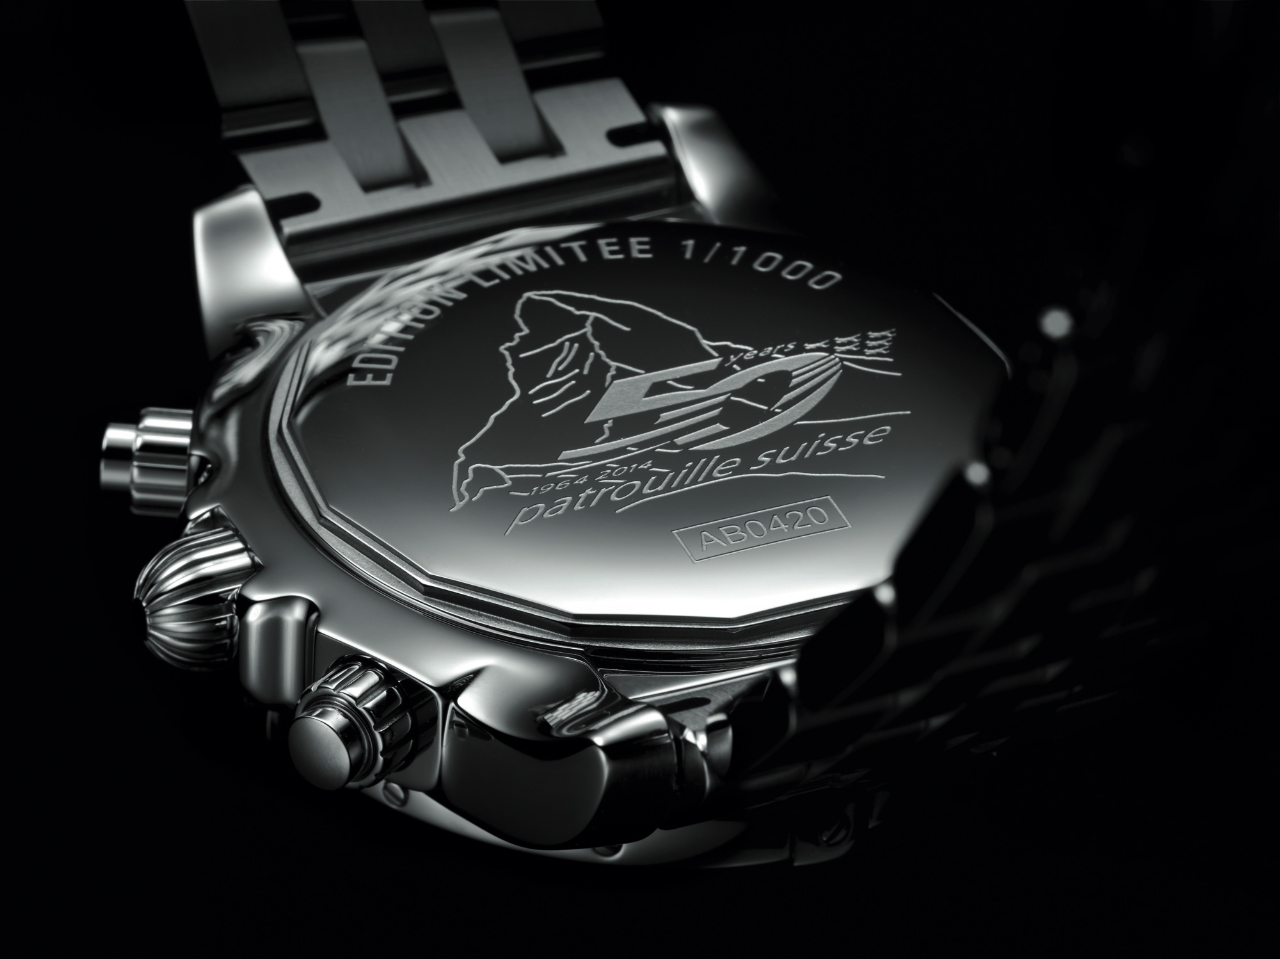 Breitling Chronomat 44 GMT Patrouille Suisse 50th Anniversary - Caseback